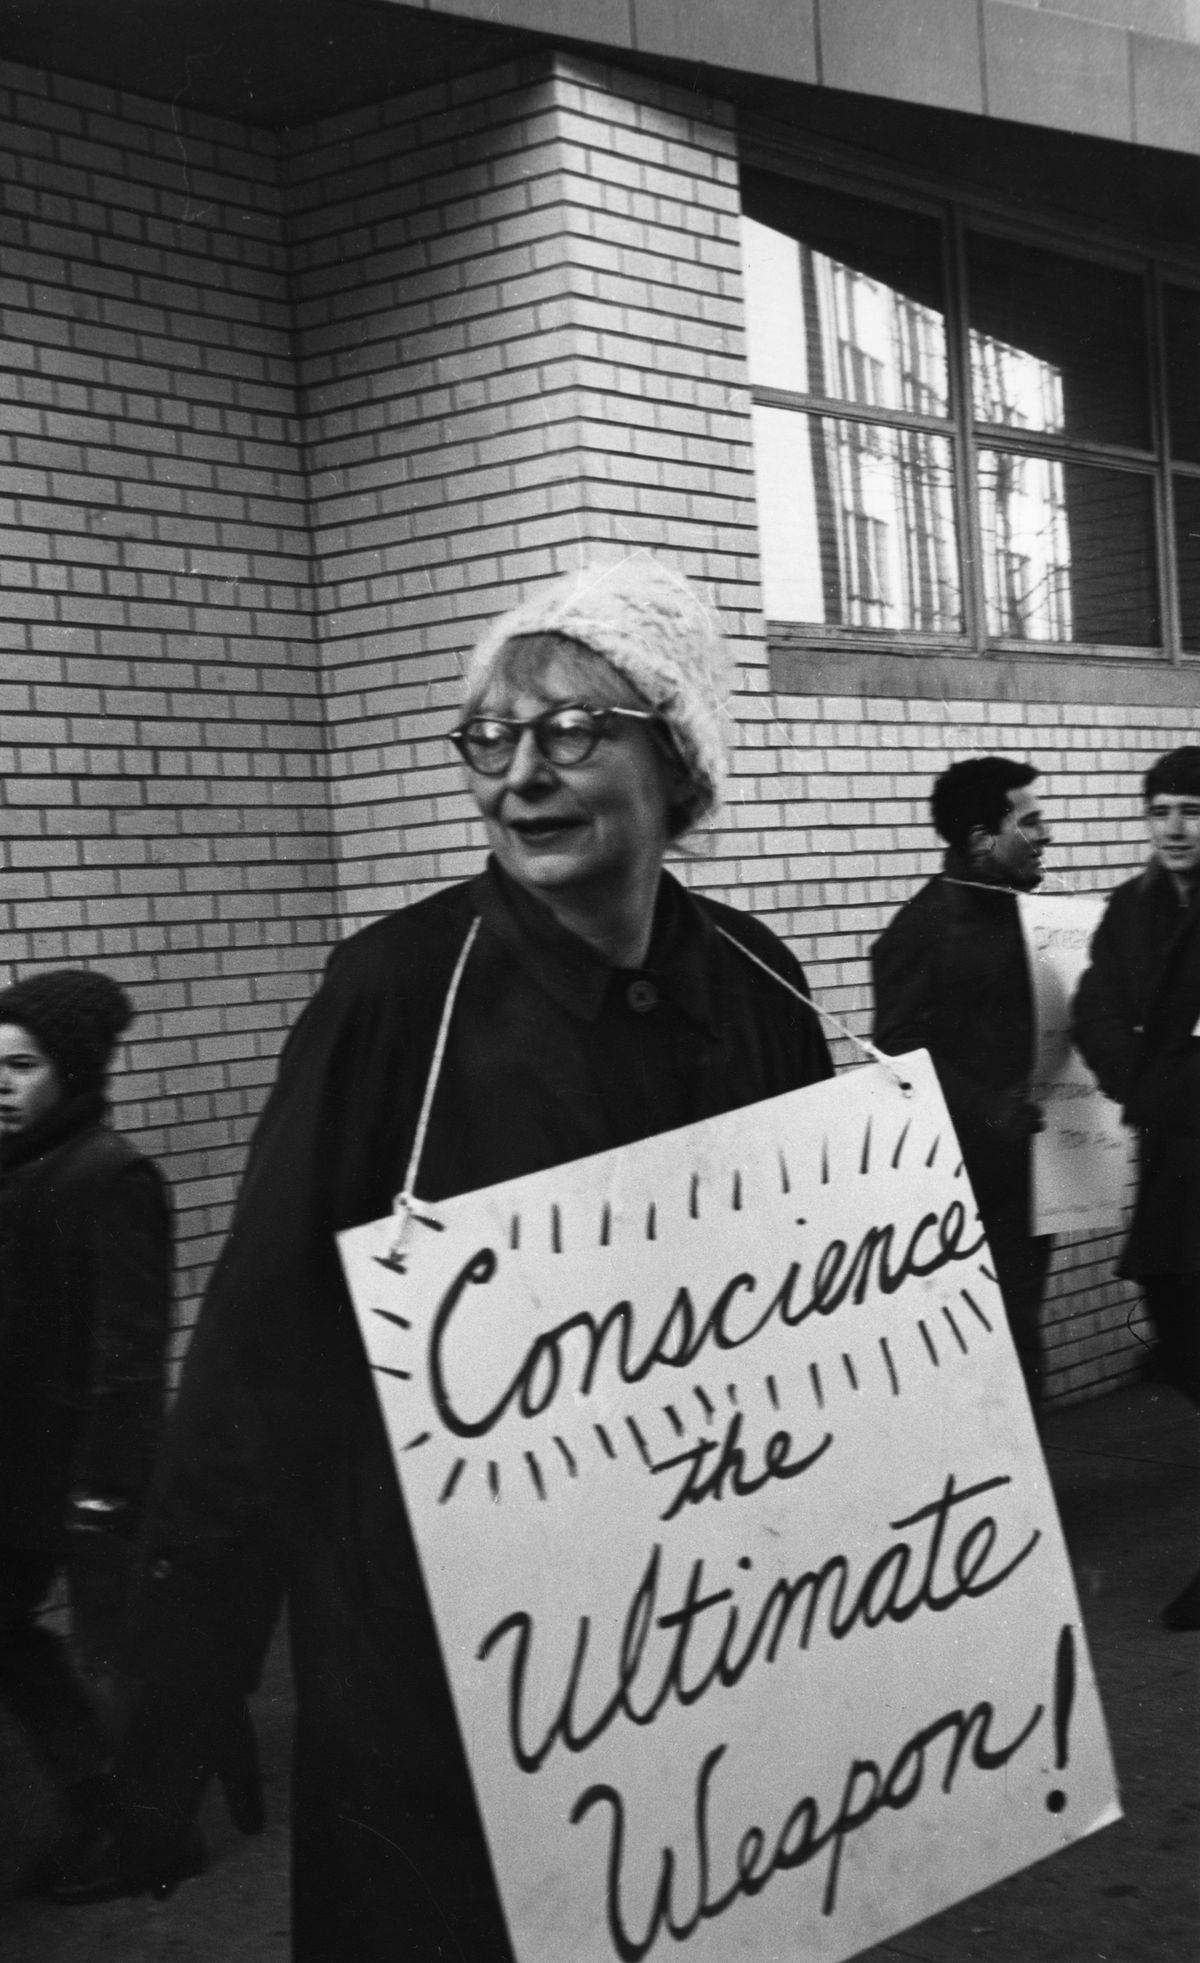 Jane Jacobs attending a boycott at P.S. 41 in New York City in February 1964.